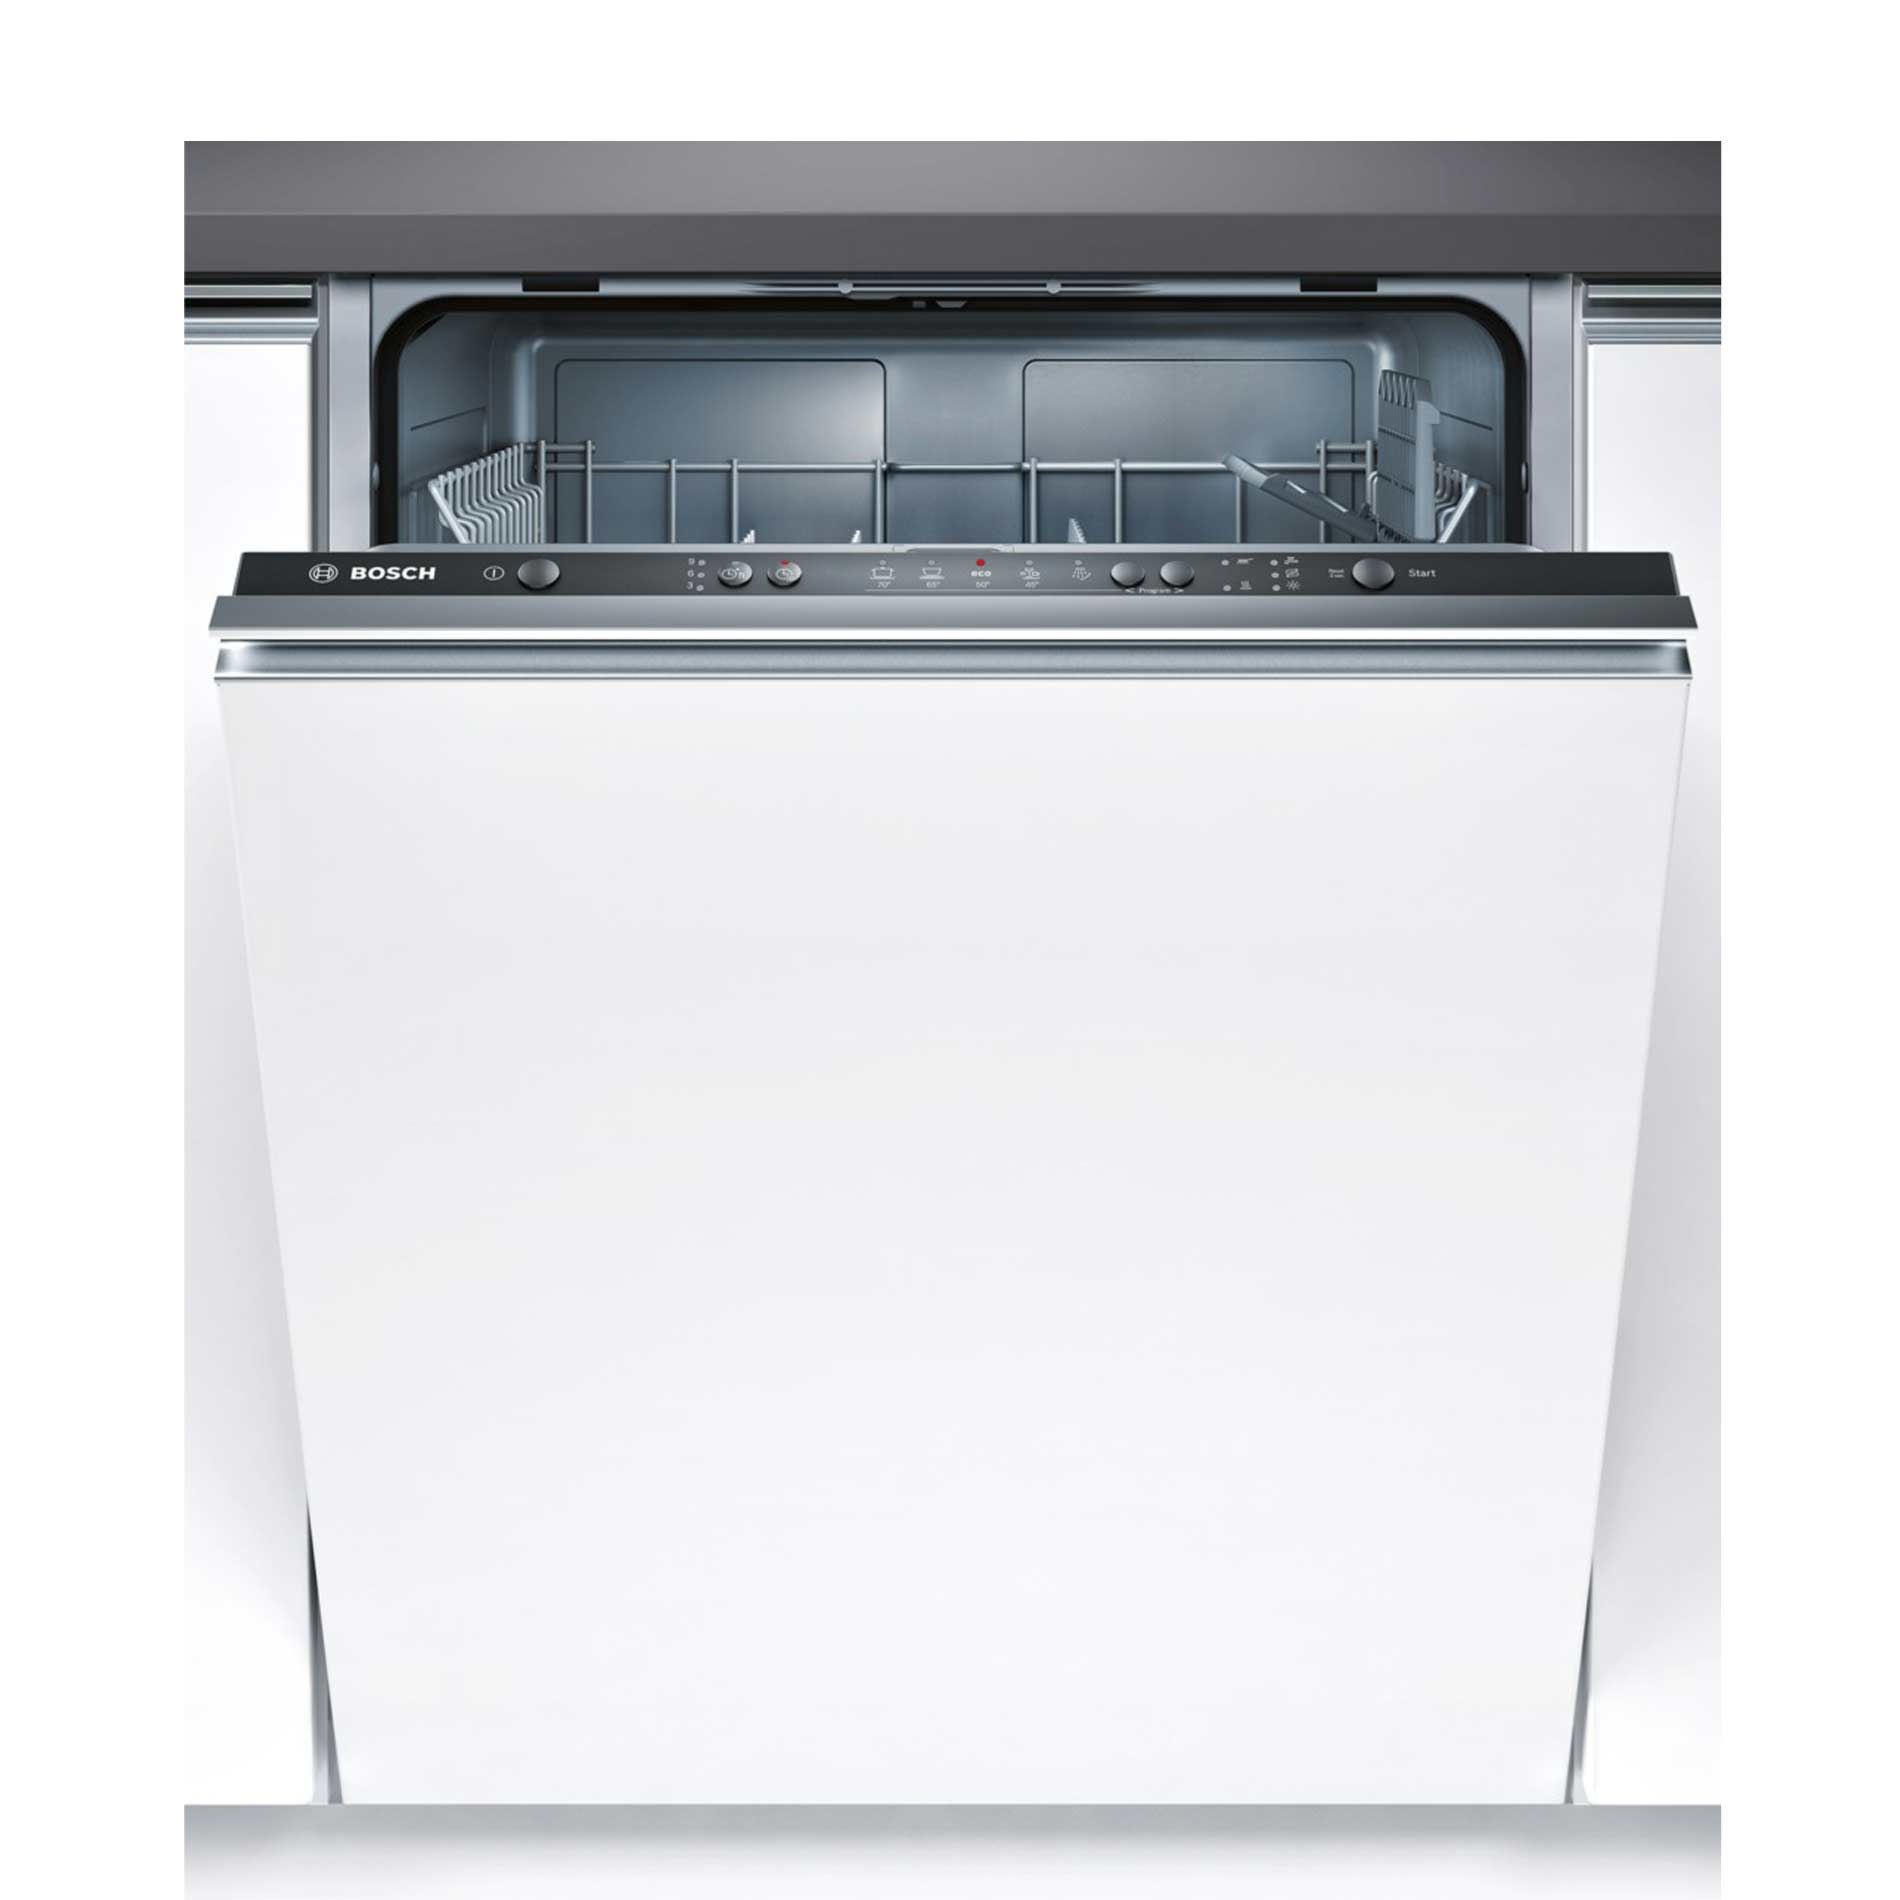 Picture of SMV50C10GB Black Fully Integrated Dishwasher